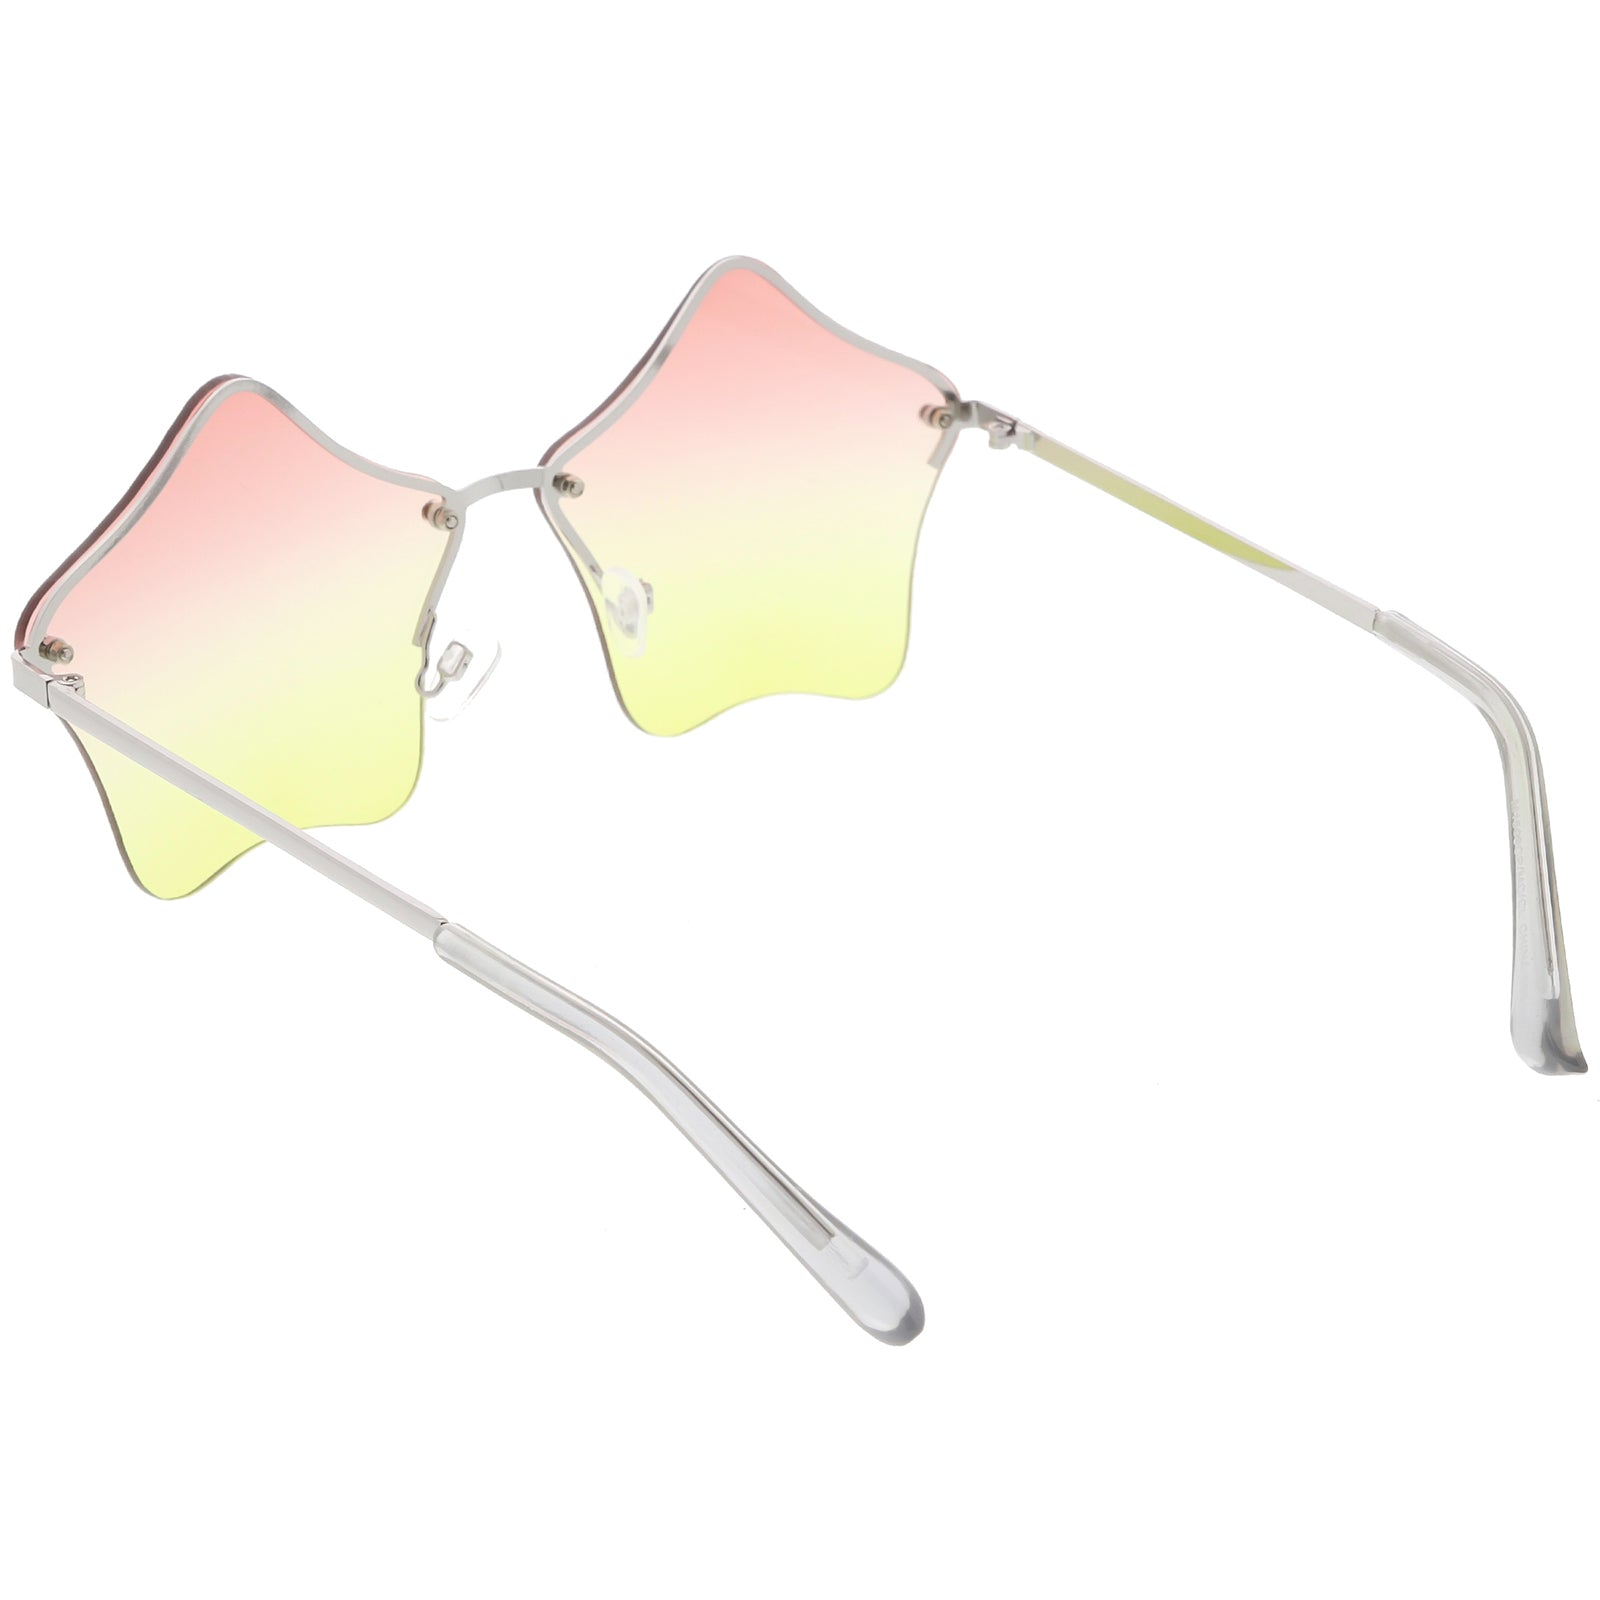 f0eda3421b085 Star Shaped Rimless Sunglasses Metal Frame Color Tinted Lens 55mm ...